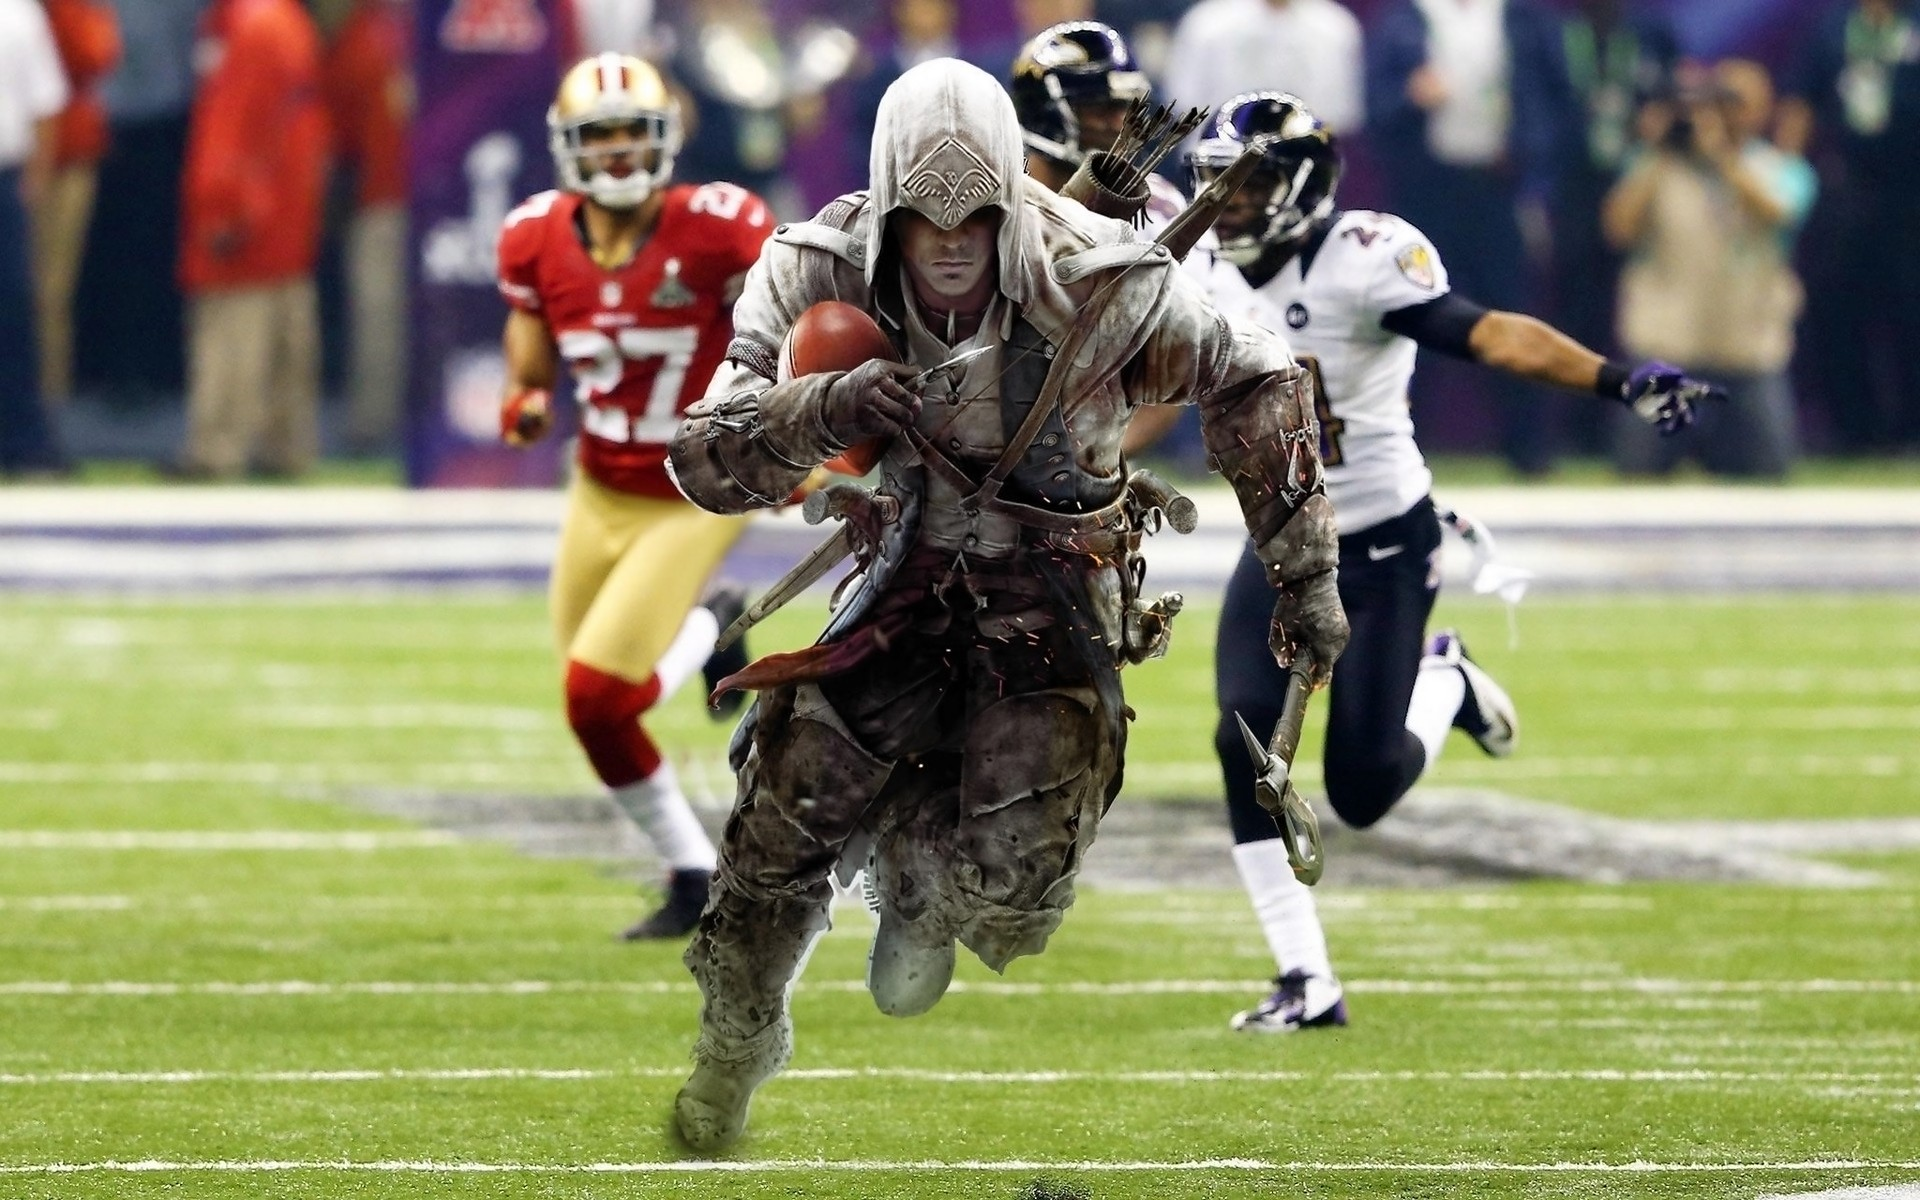 Assassin's Creed 4 Super Bowl